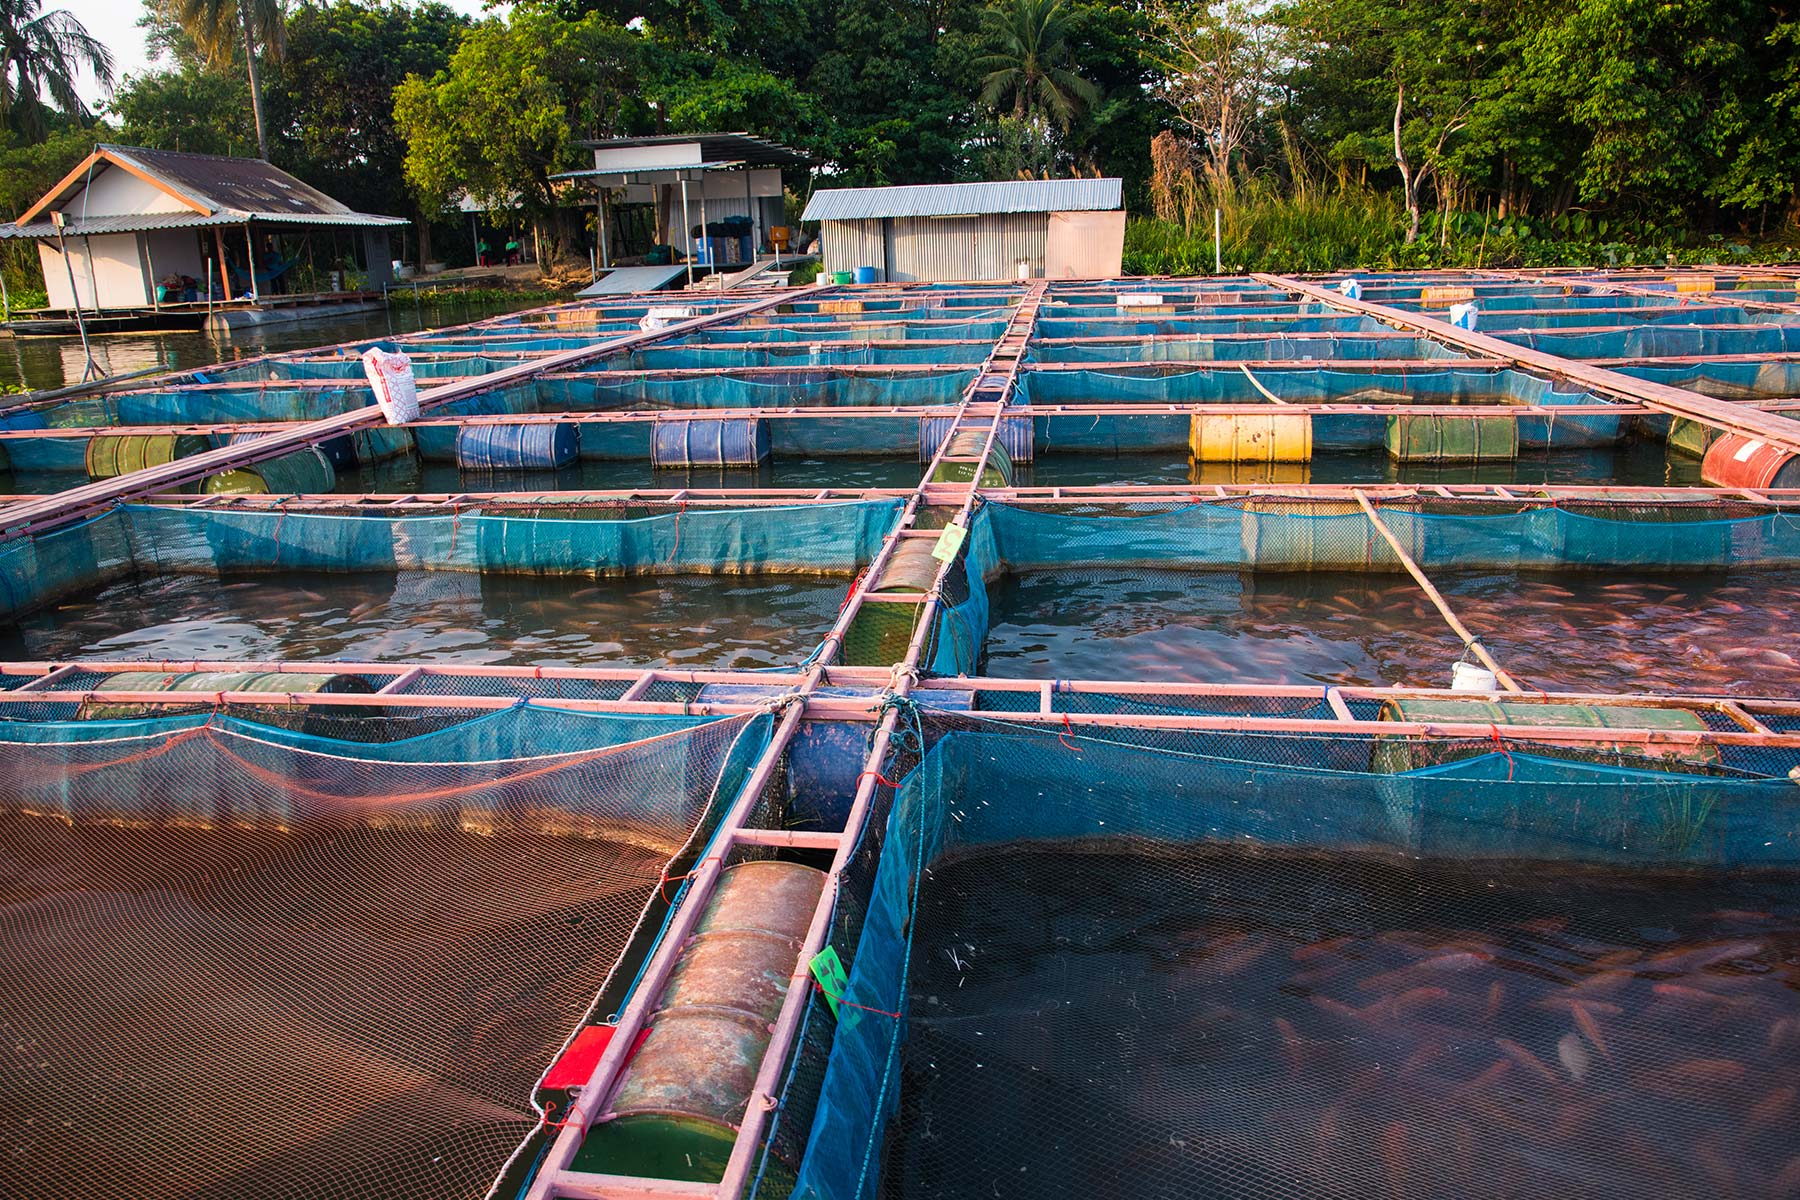 Looking to aquaculture